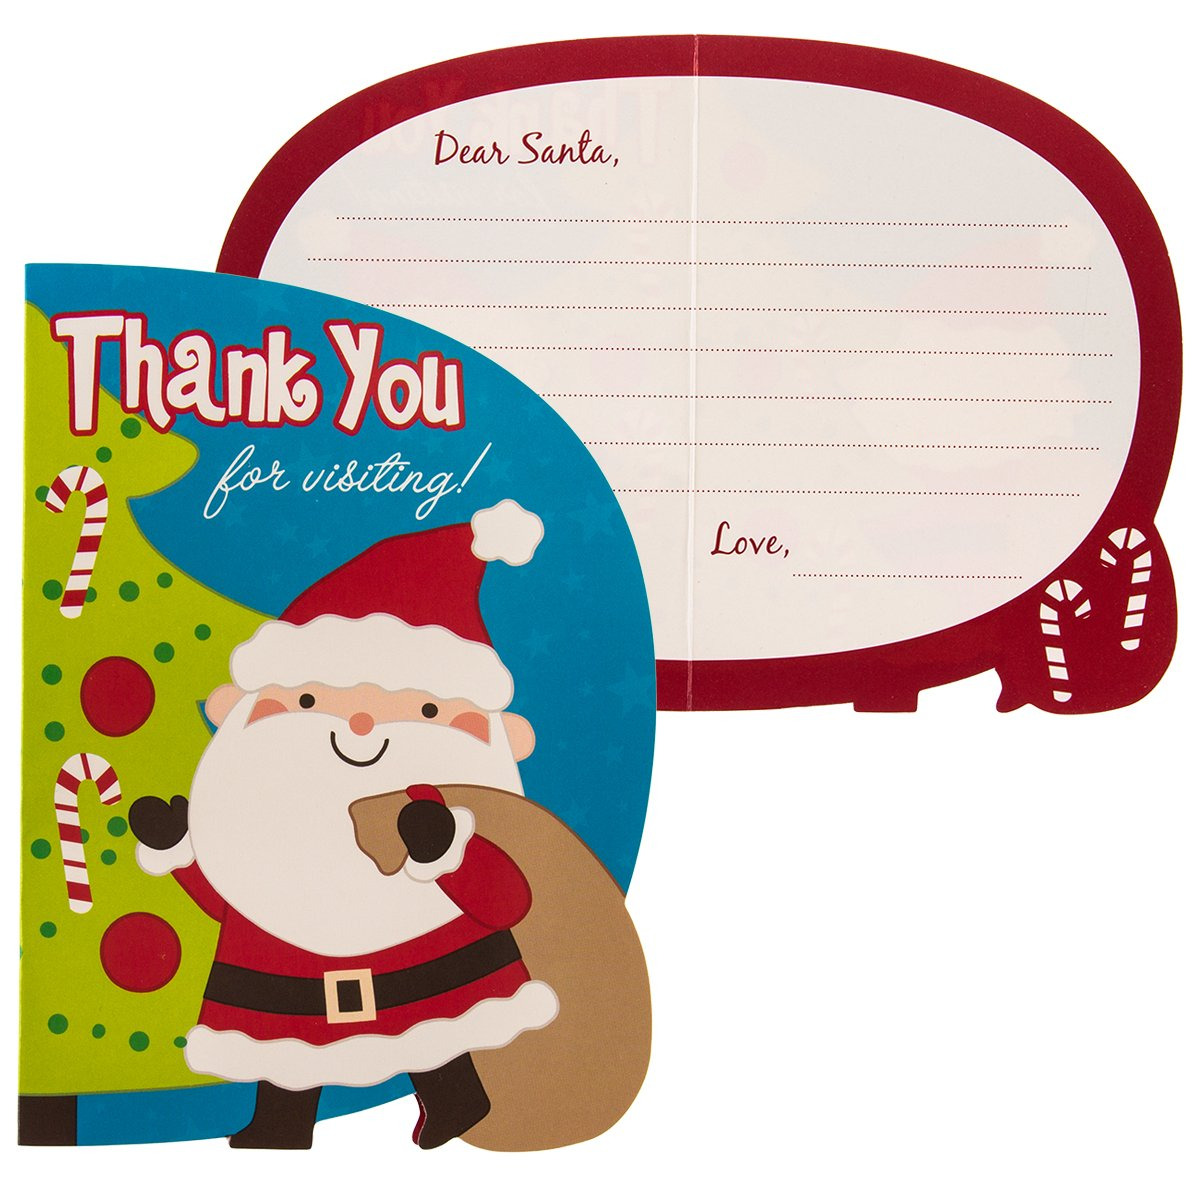 Stickers Paper Crafts 12 Pack Kids Letters to Santa Kits: Christmas Wish List Party Favor Bulk Set Thank You Cards /& Envelopes